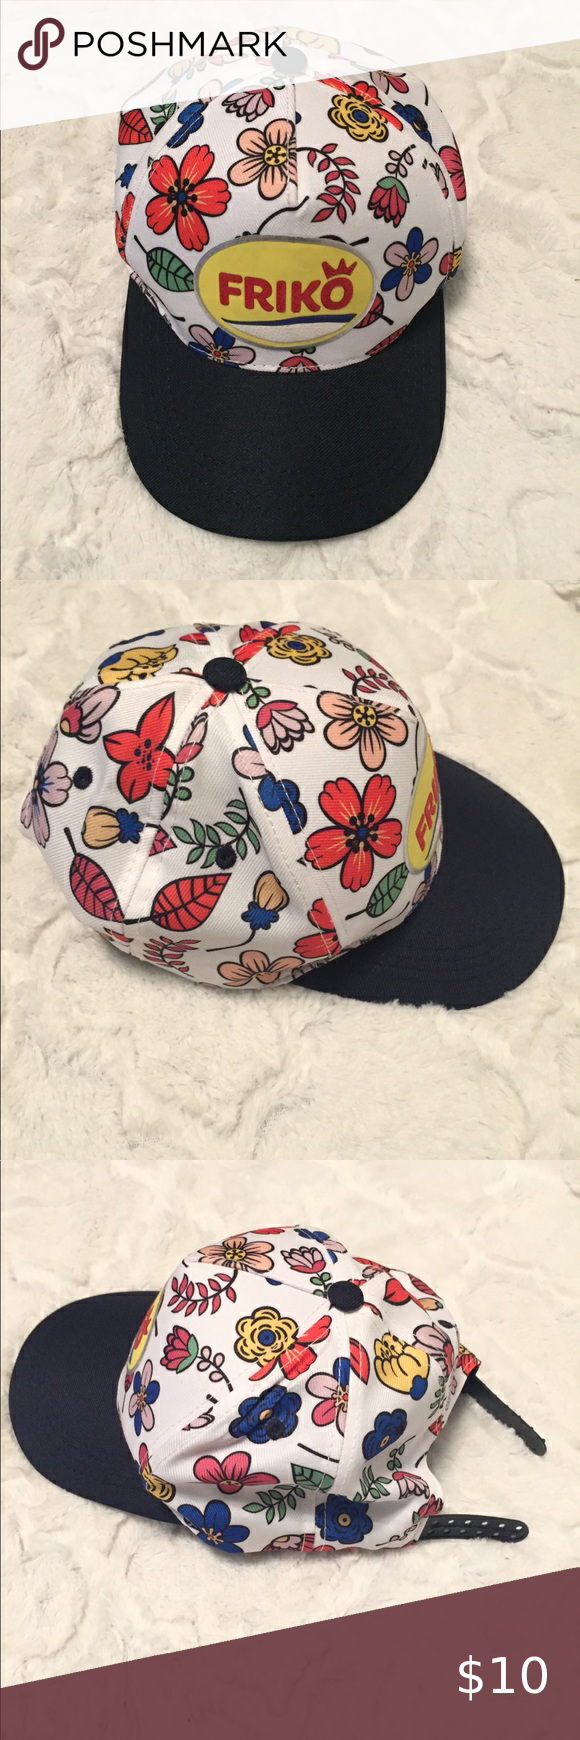 Friko White Floral Snap Back Cap Deep Navy Brim In 2020 Women Accessories Hats Clothes Design Brim